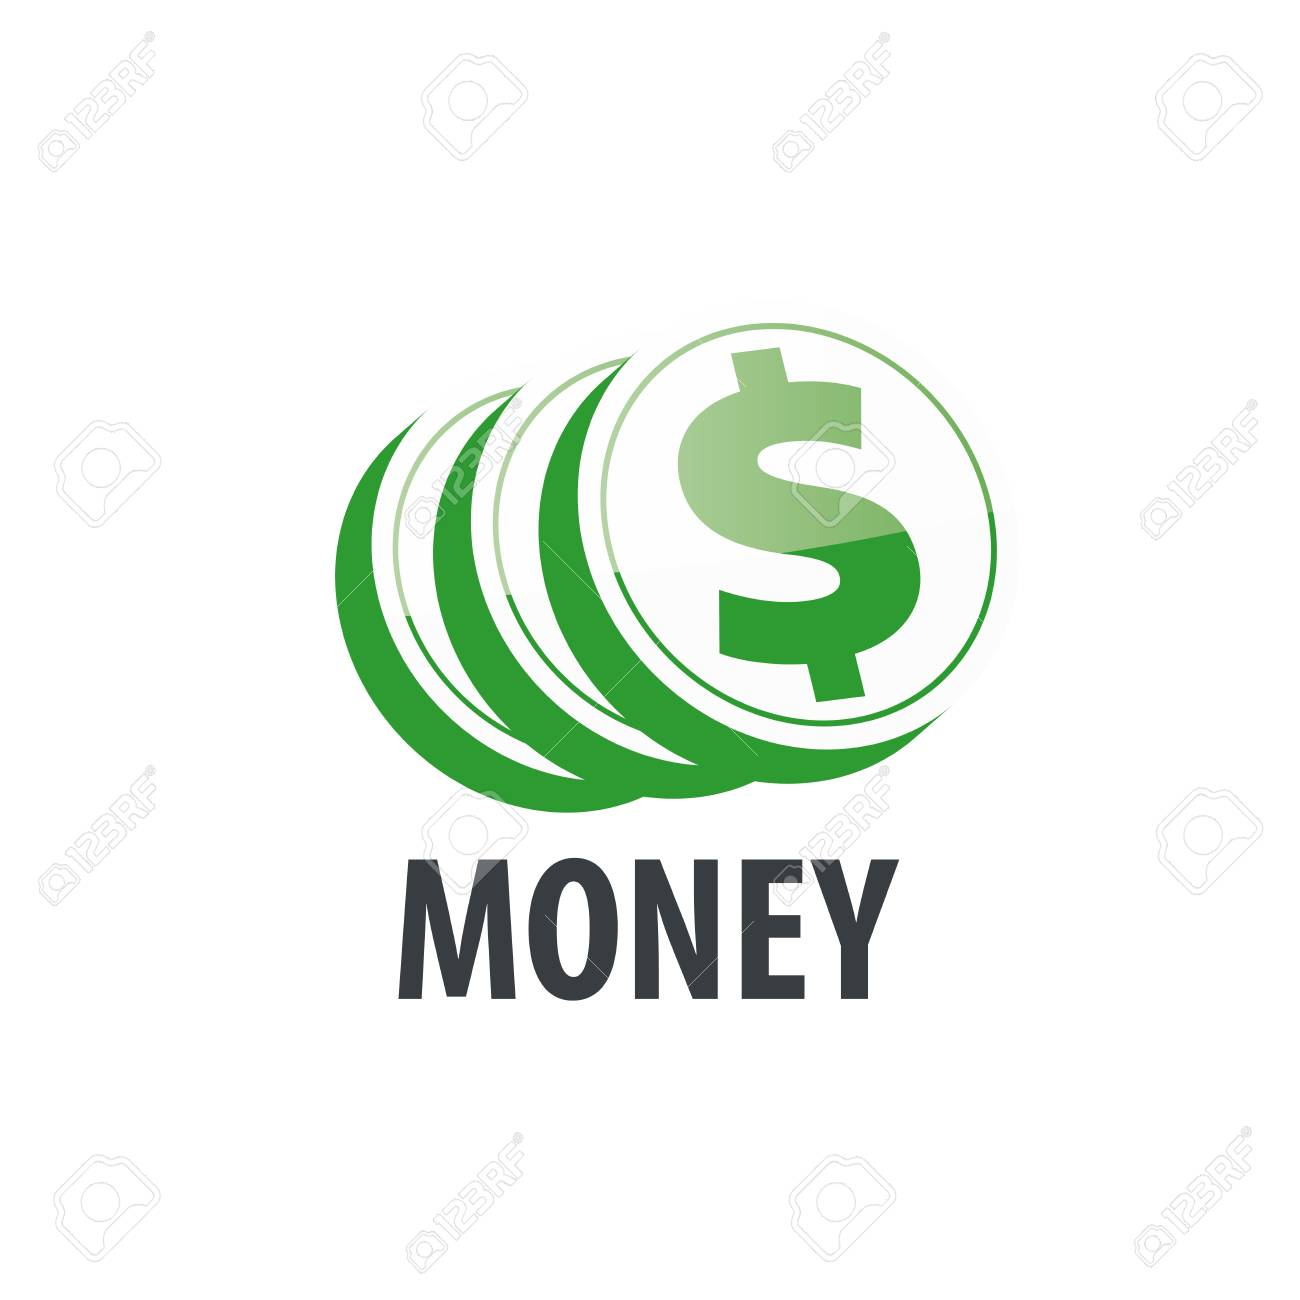 Money Logo Design Template Vector Illustration Of Icon Royalty Free Cliparts Vectors And Stock Illustration Image 61753459